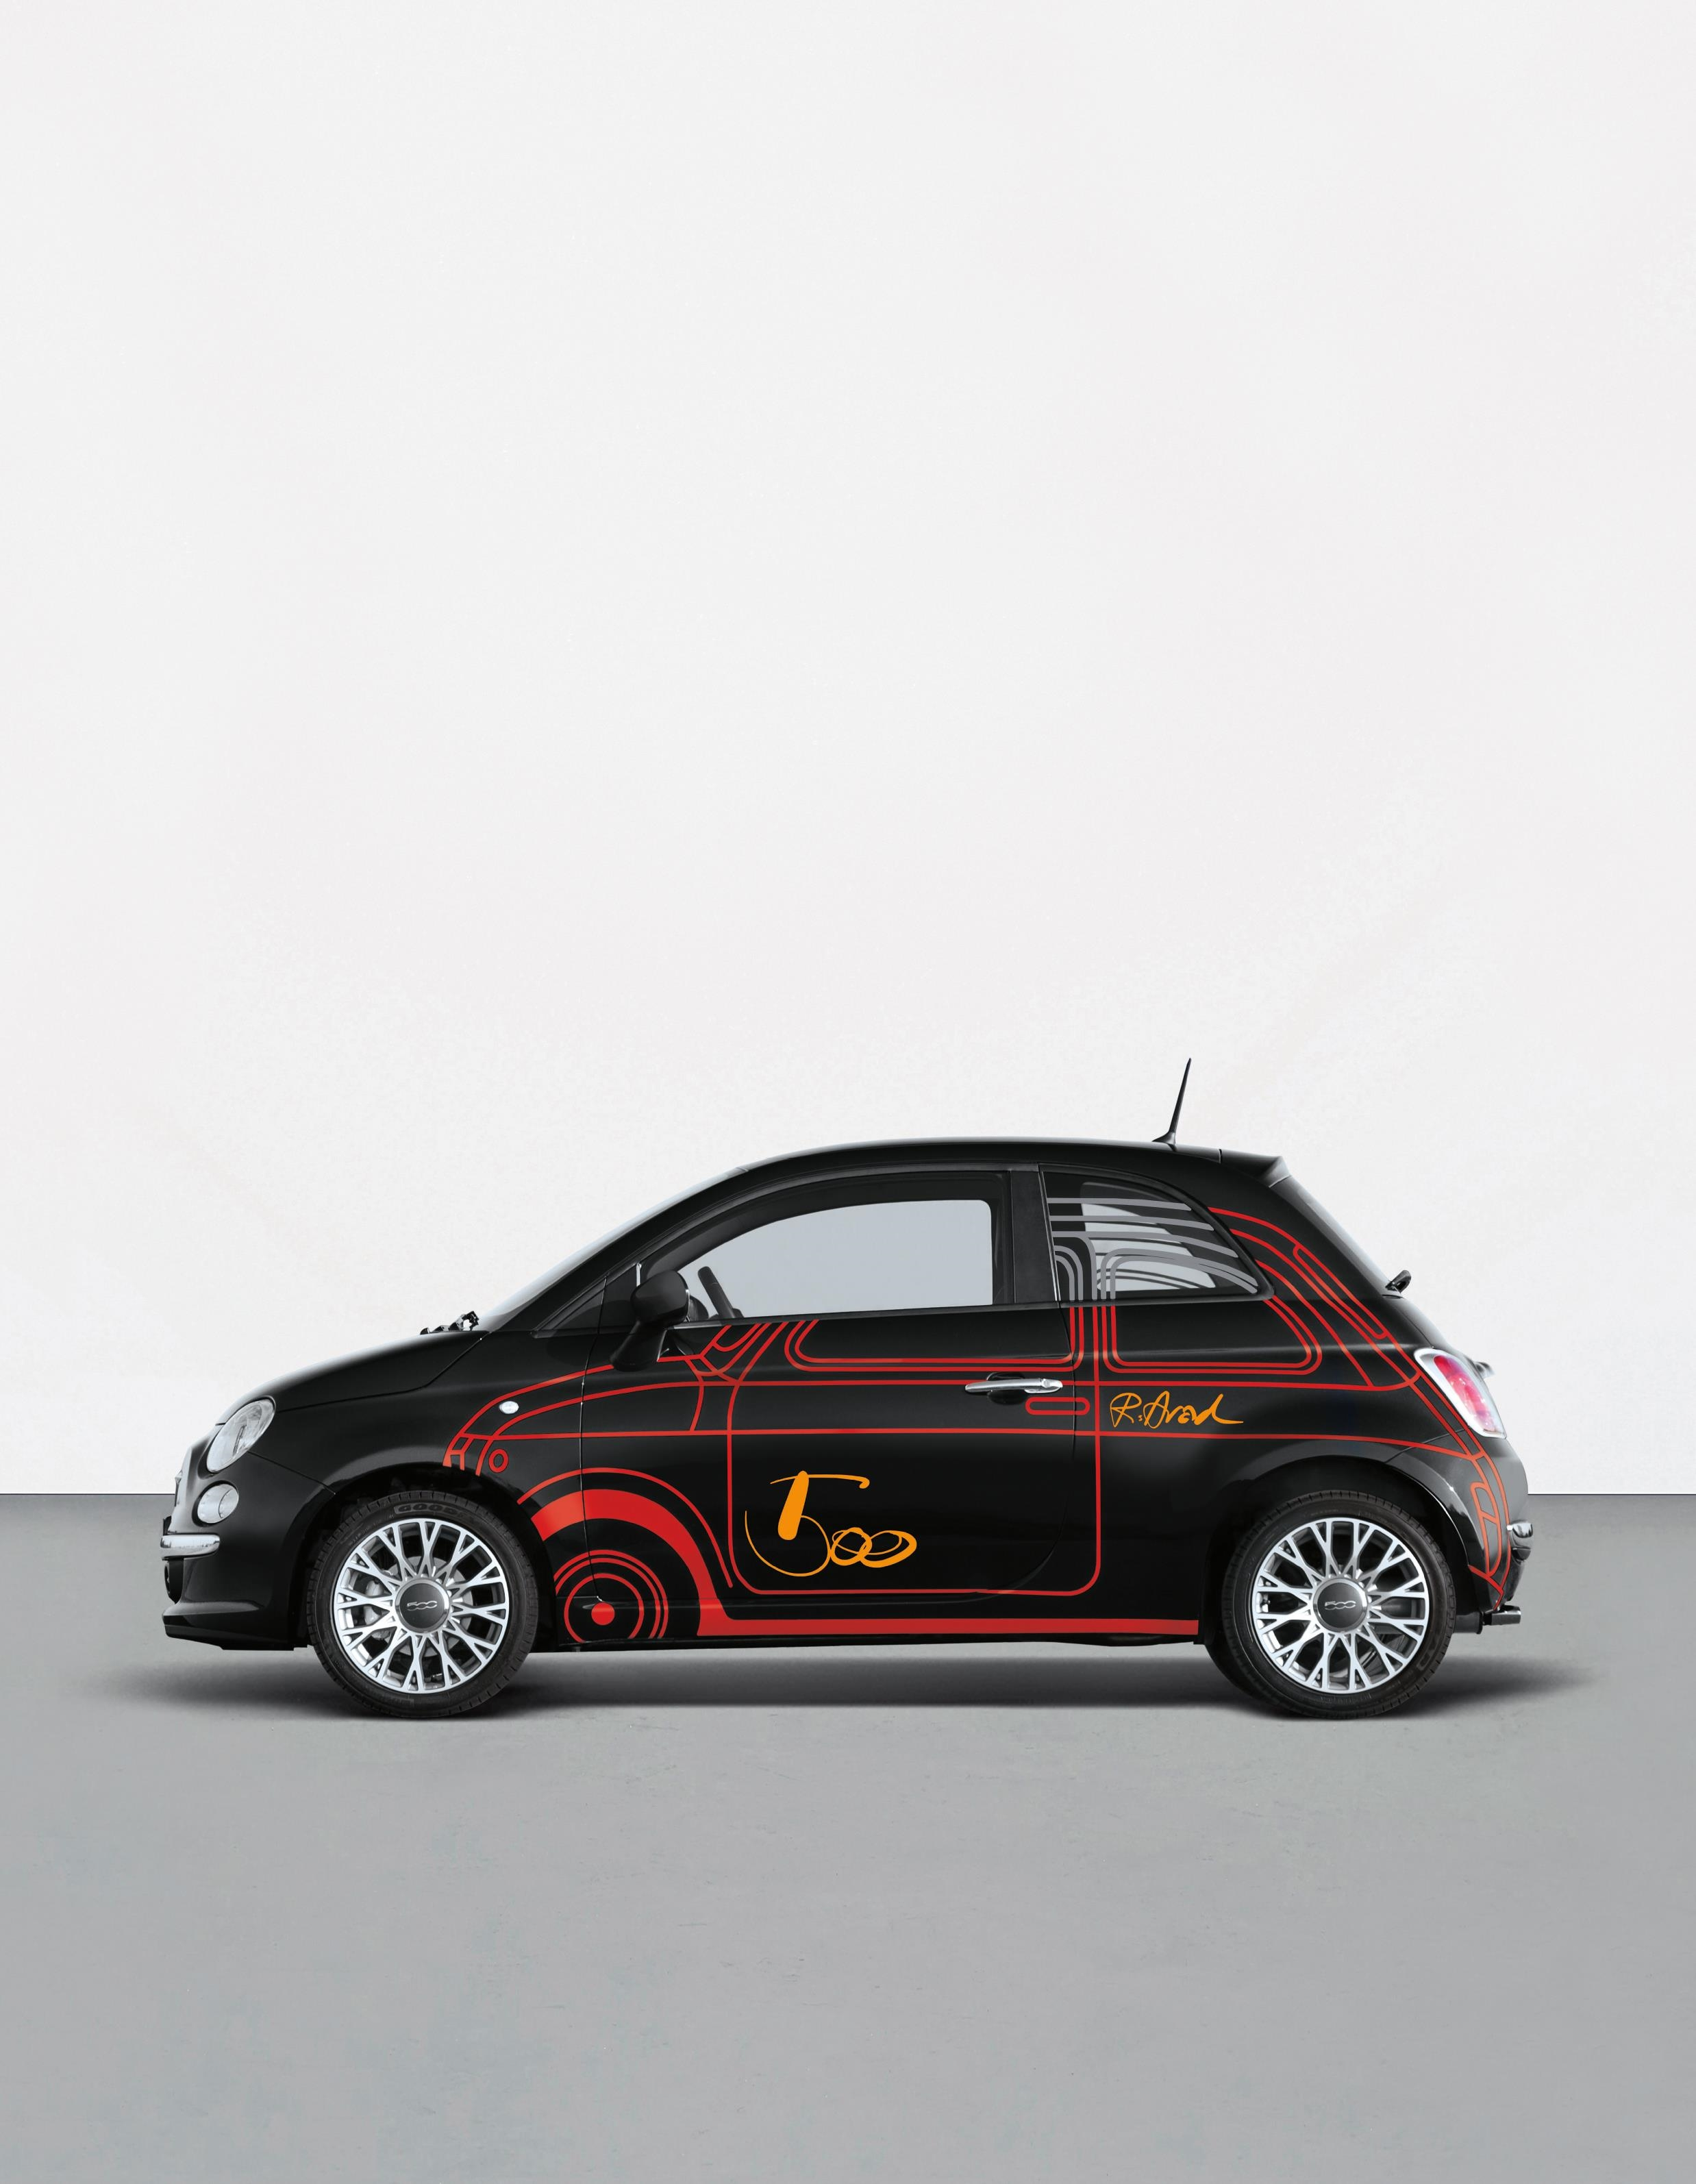 ron arad wrapped fiat 500 1 4 16v sport dualogic. Black Bedroom Furniture Sets. Home Design Ideas